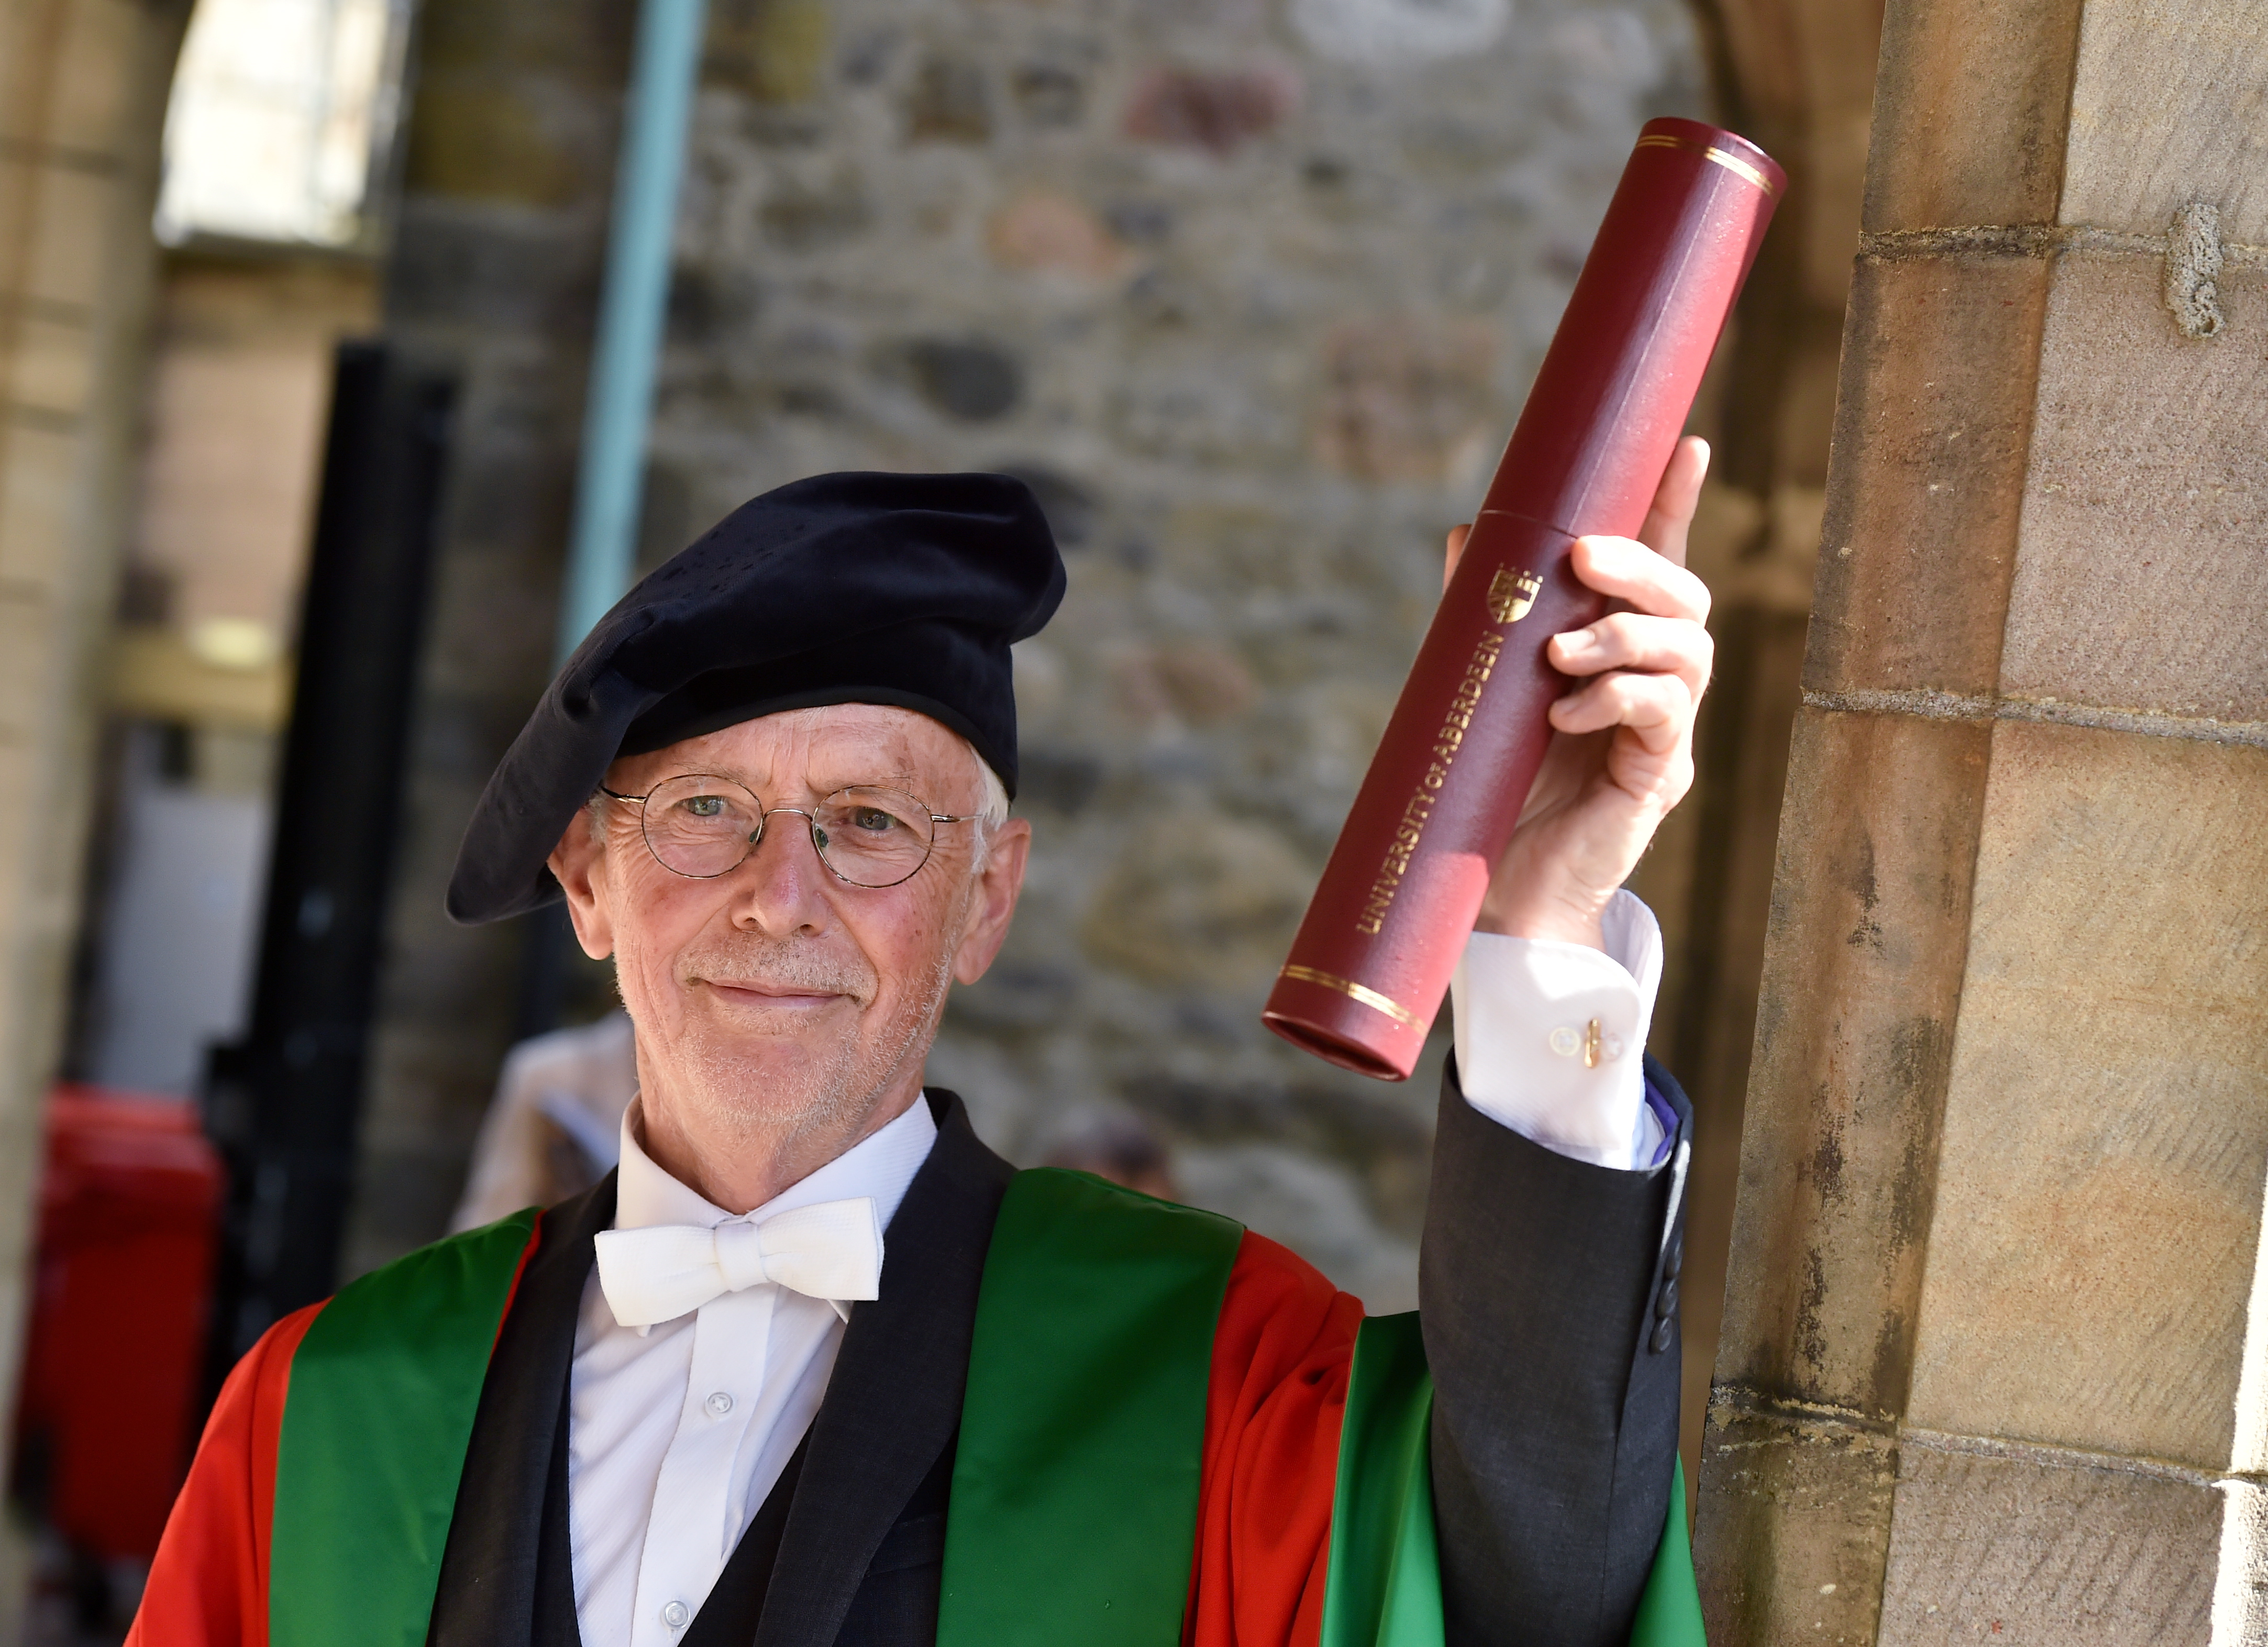 Professor Mike Greaves was given an honorary degree